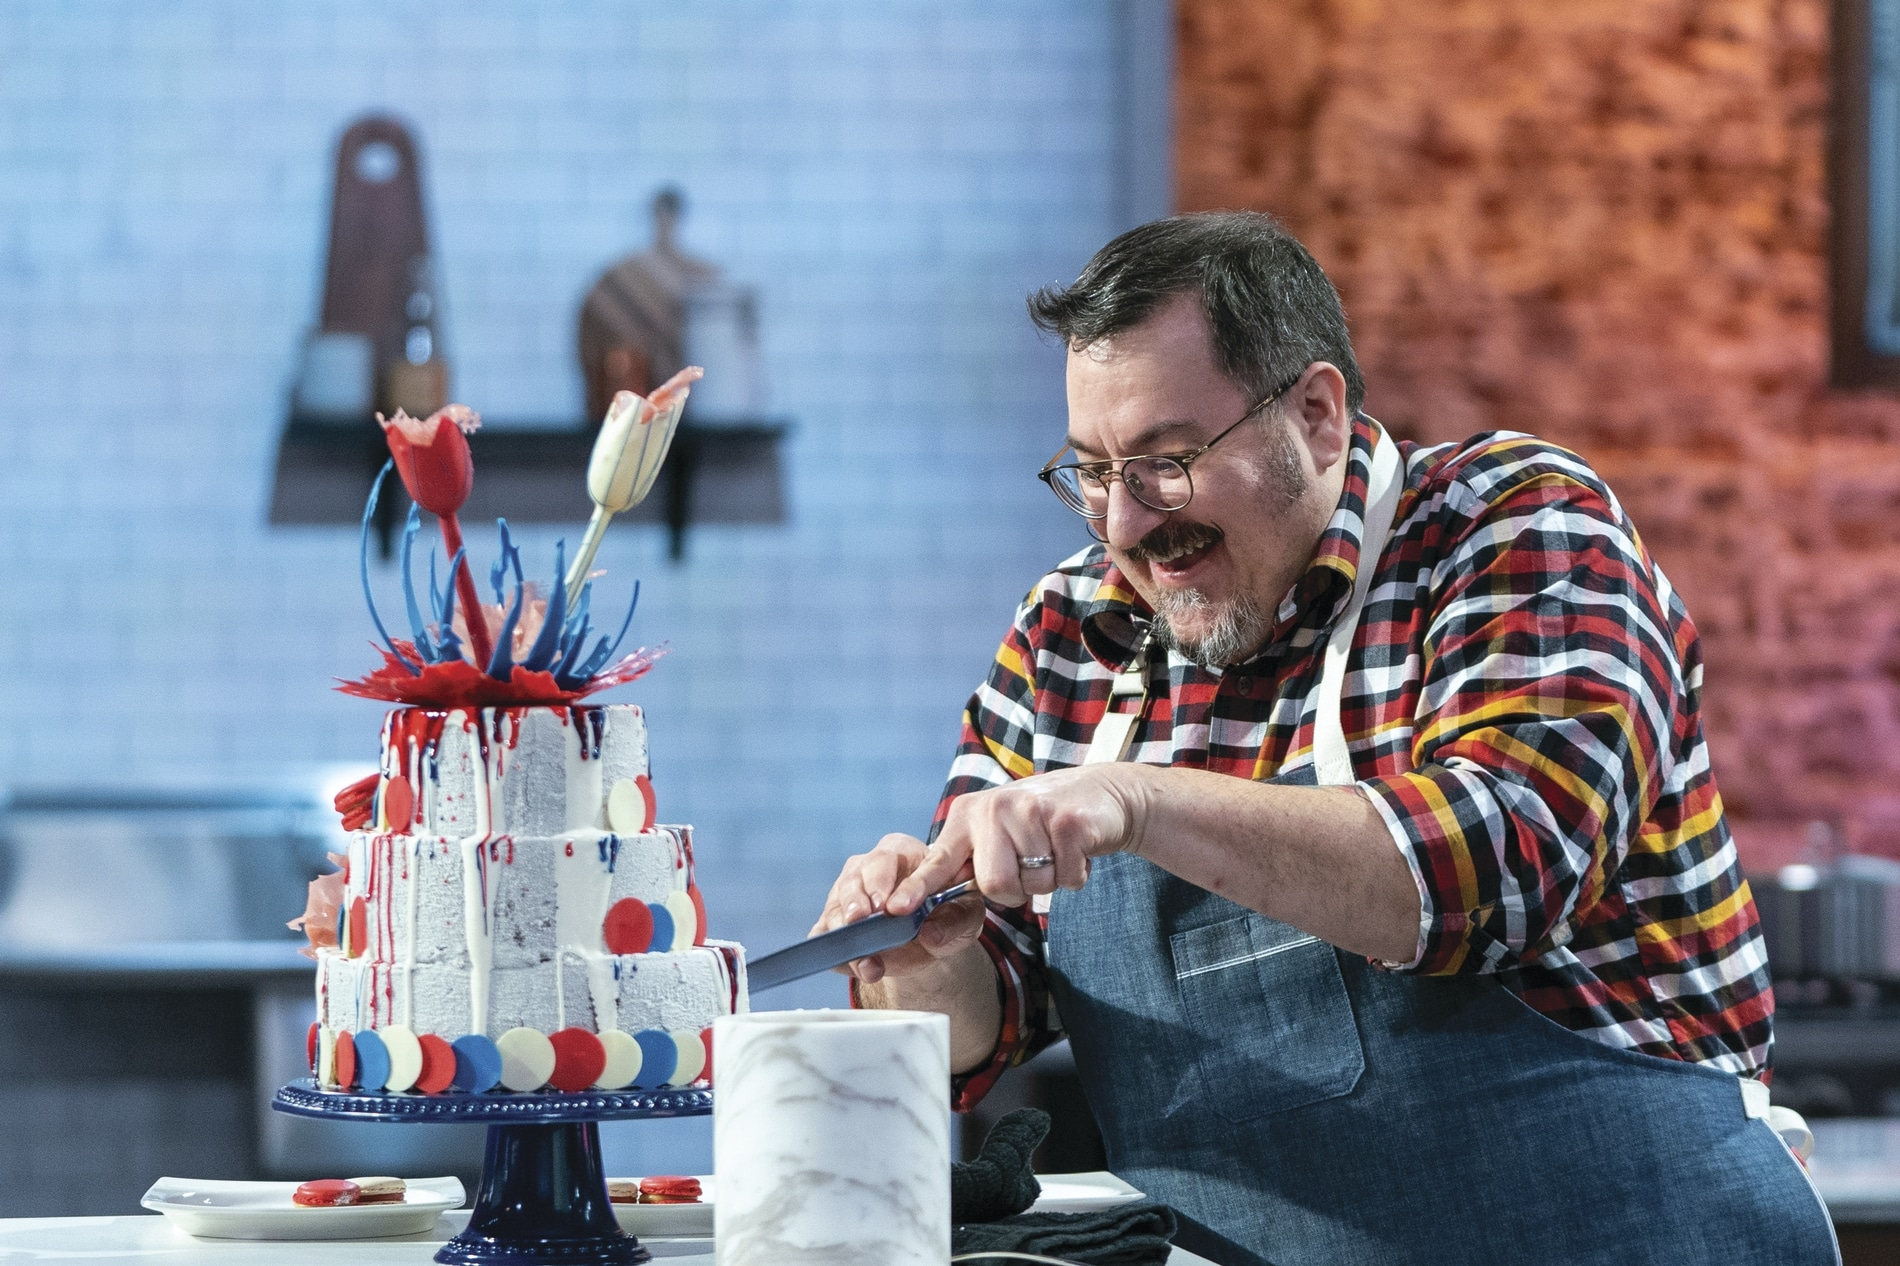 Eric_Keppler_presents_his_cake_during_the_judging_of_the_Master_Challeng.jpg